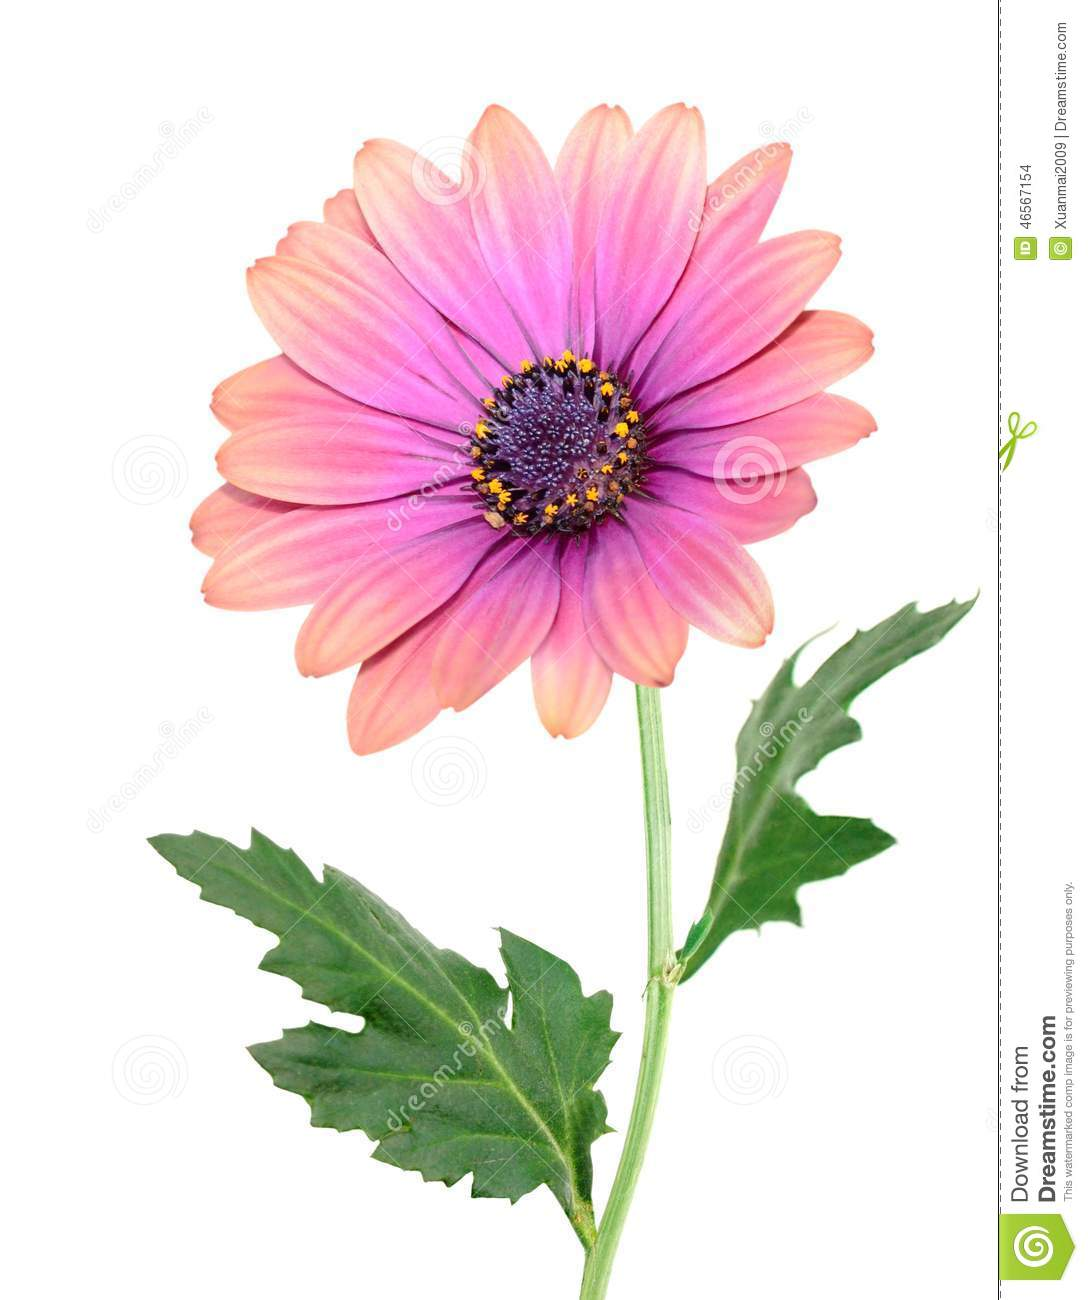 A aster daisy flower stock photo image of open elegant 46567154 a aster daisy flower izmirmasajfo Image collections